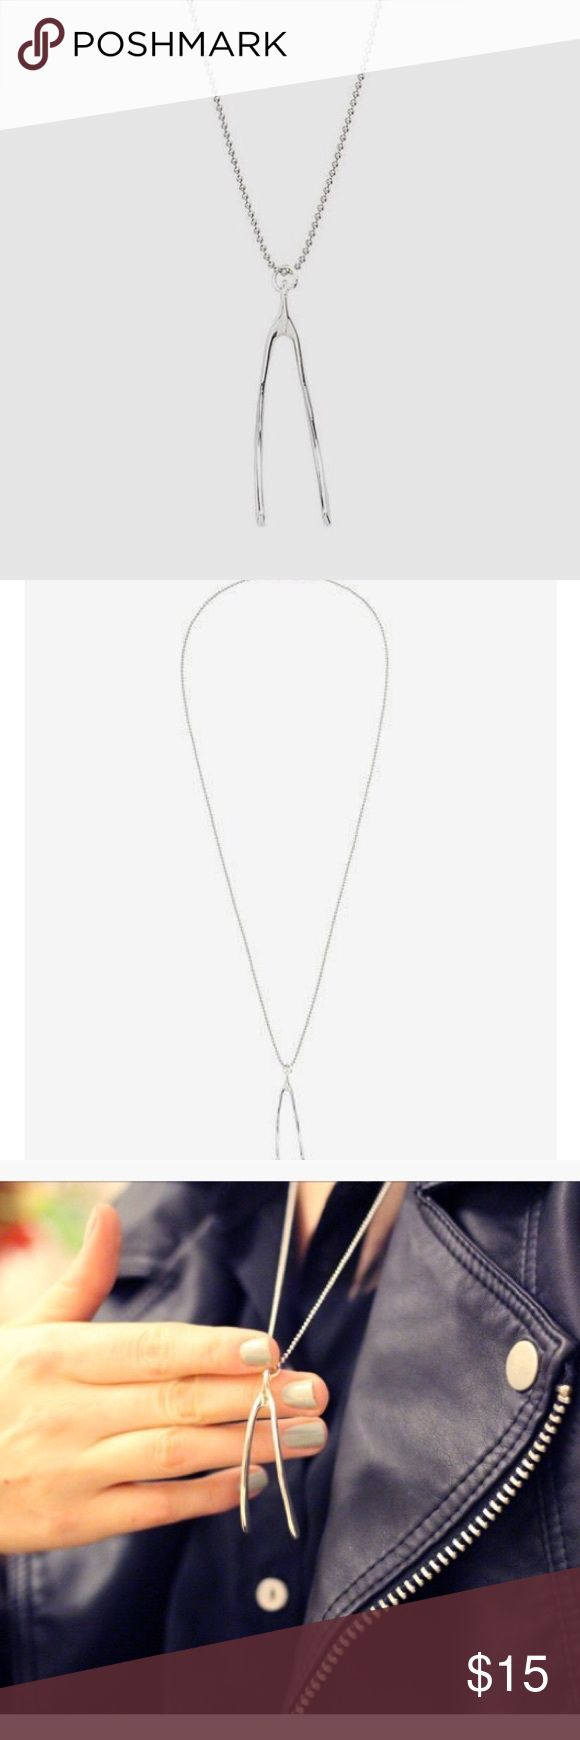 Marc by Marc Jacobs Silver Wishbone Necklace Silver beaded chain. Marc by Marc Jacobs Jewelry Necklaces